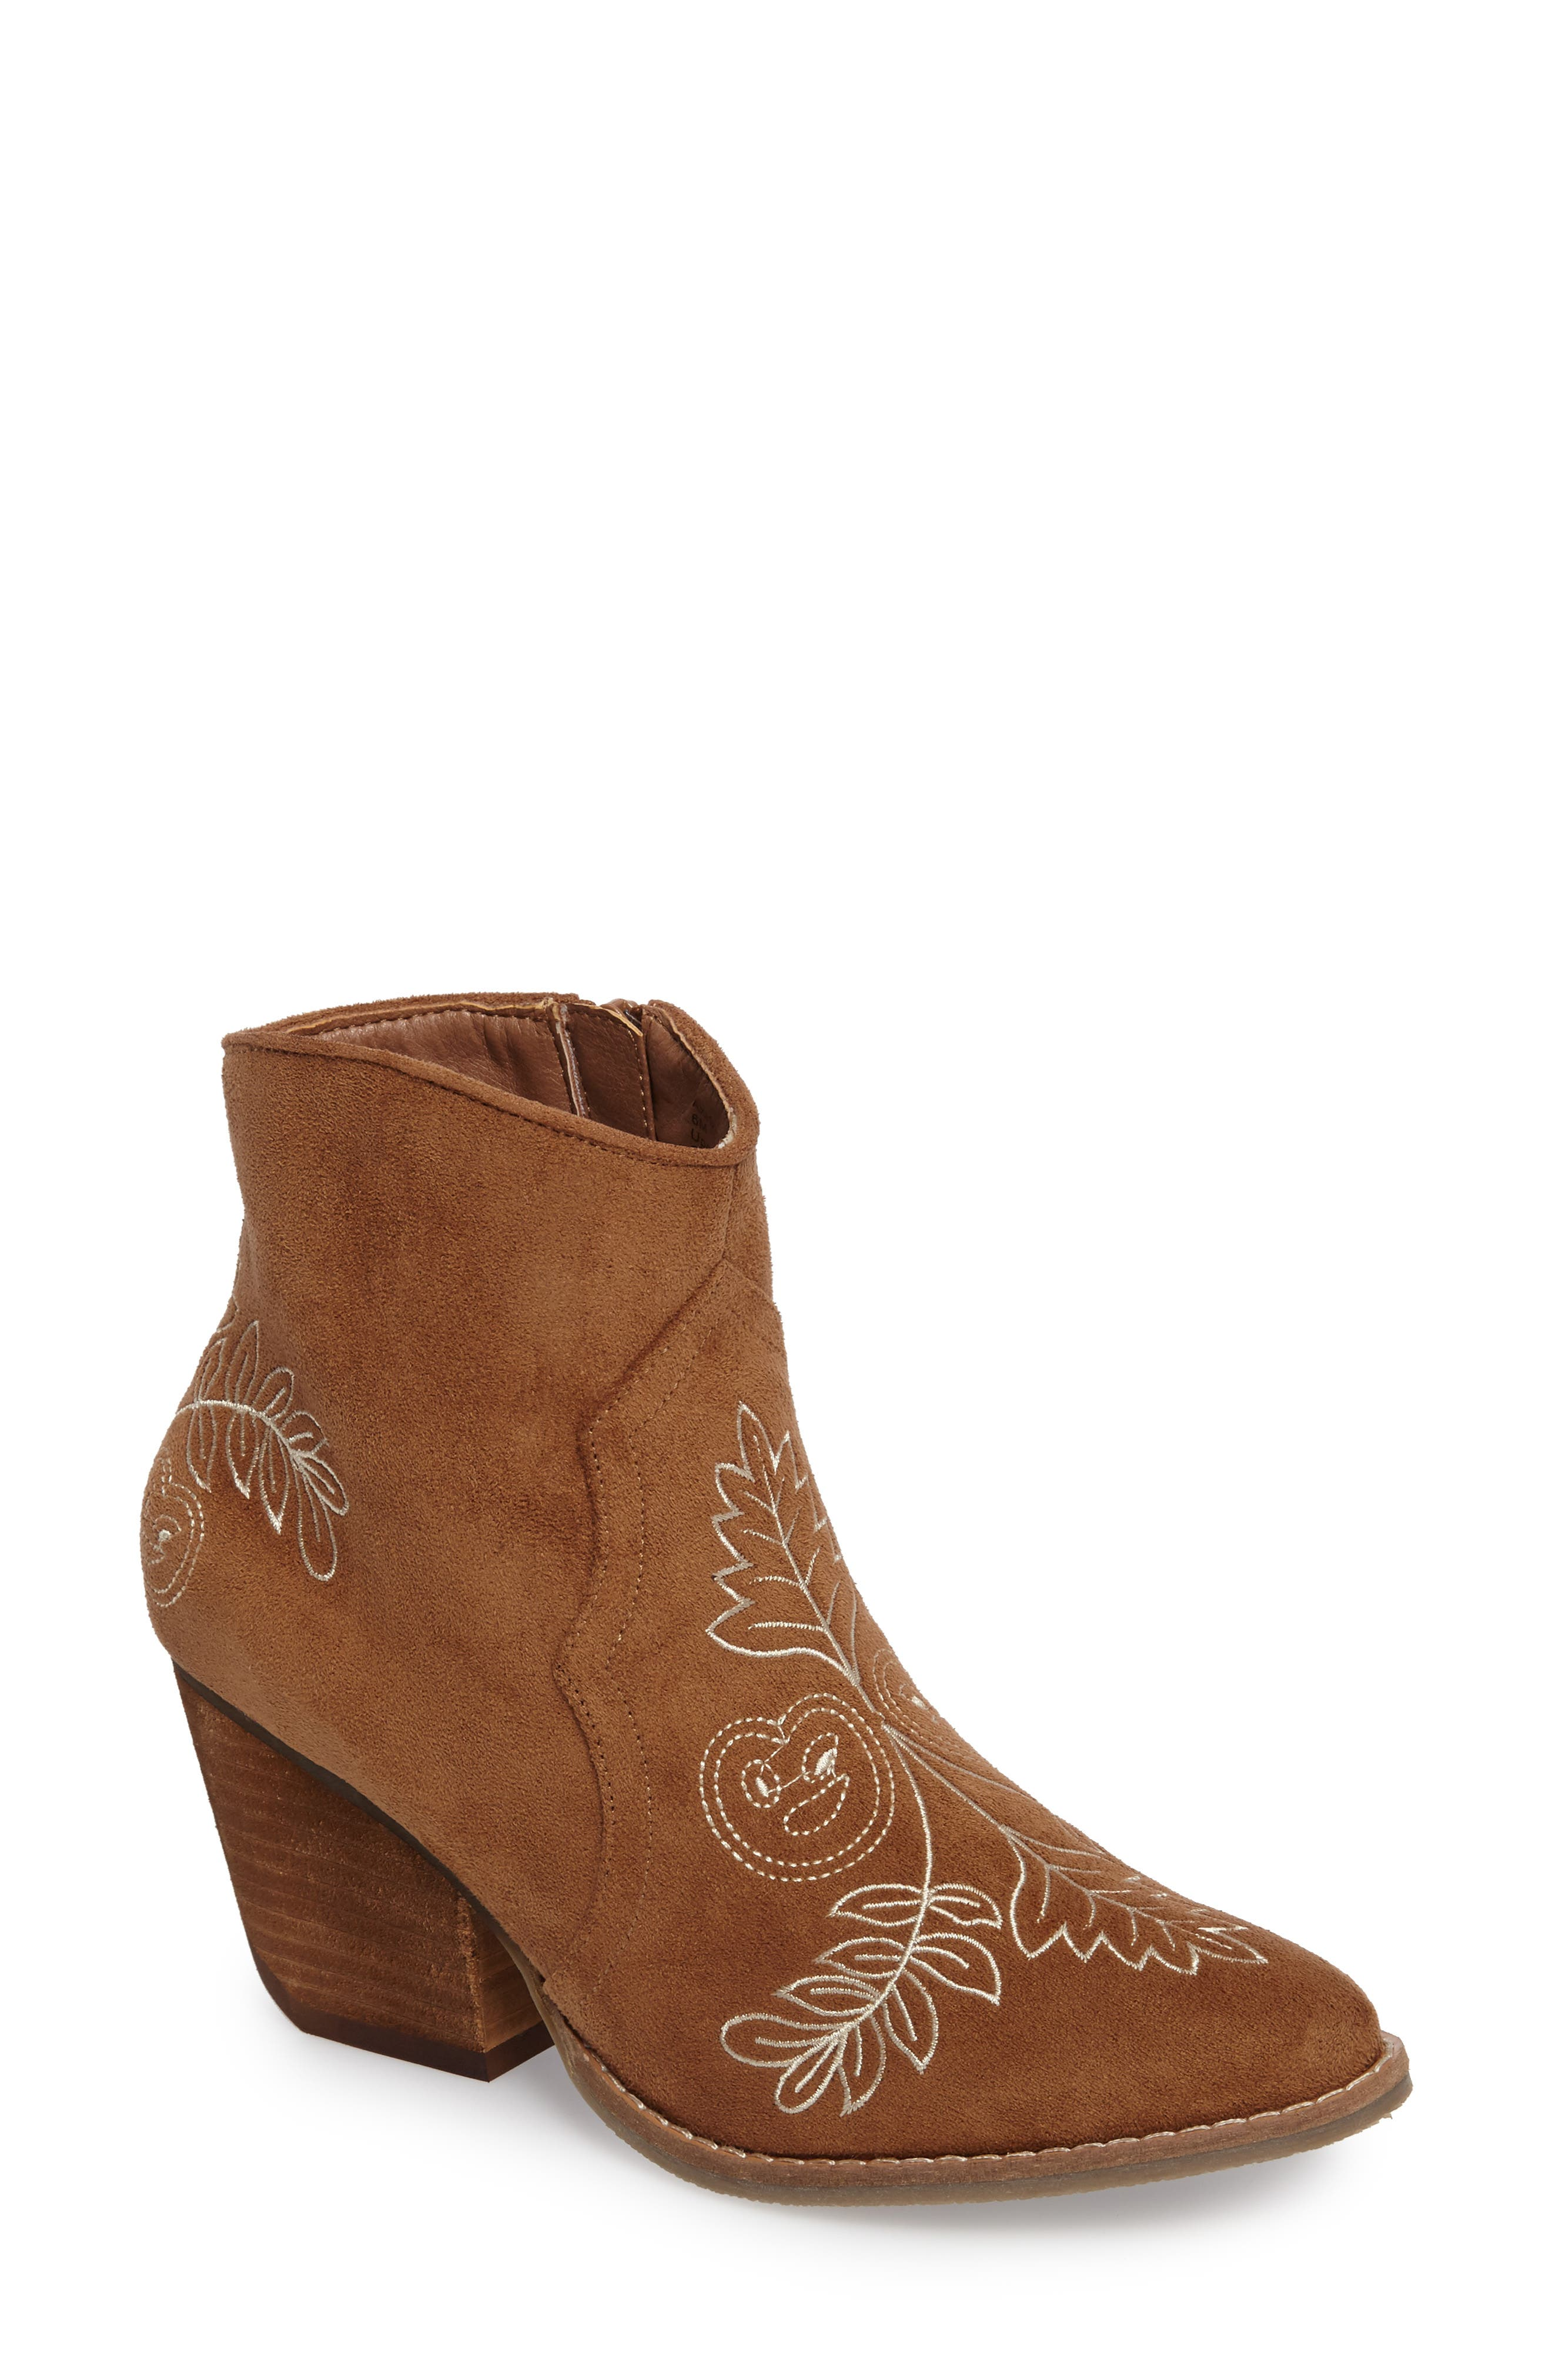 Main Image - Coconuts by Matisse Axis Embroidered Bootie (Women)